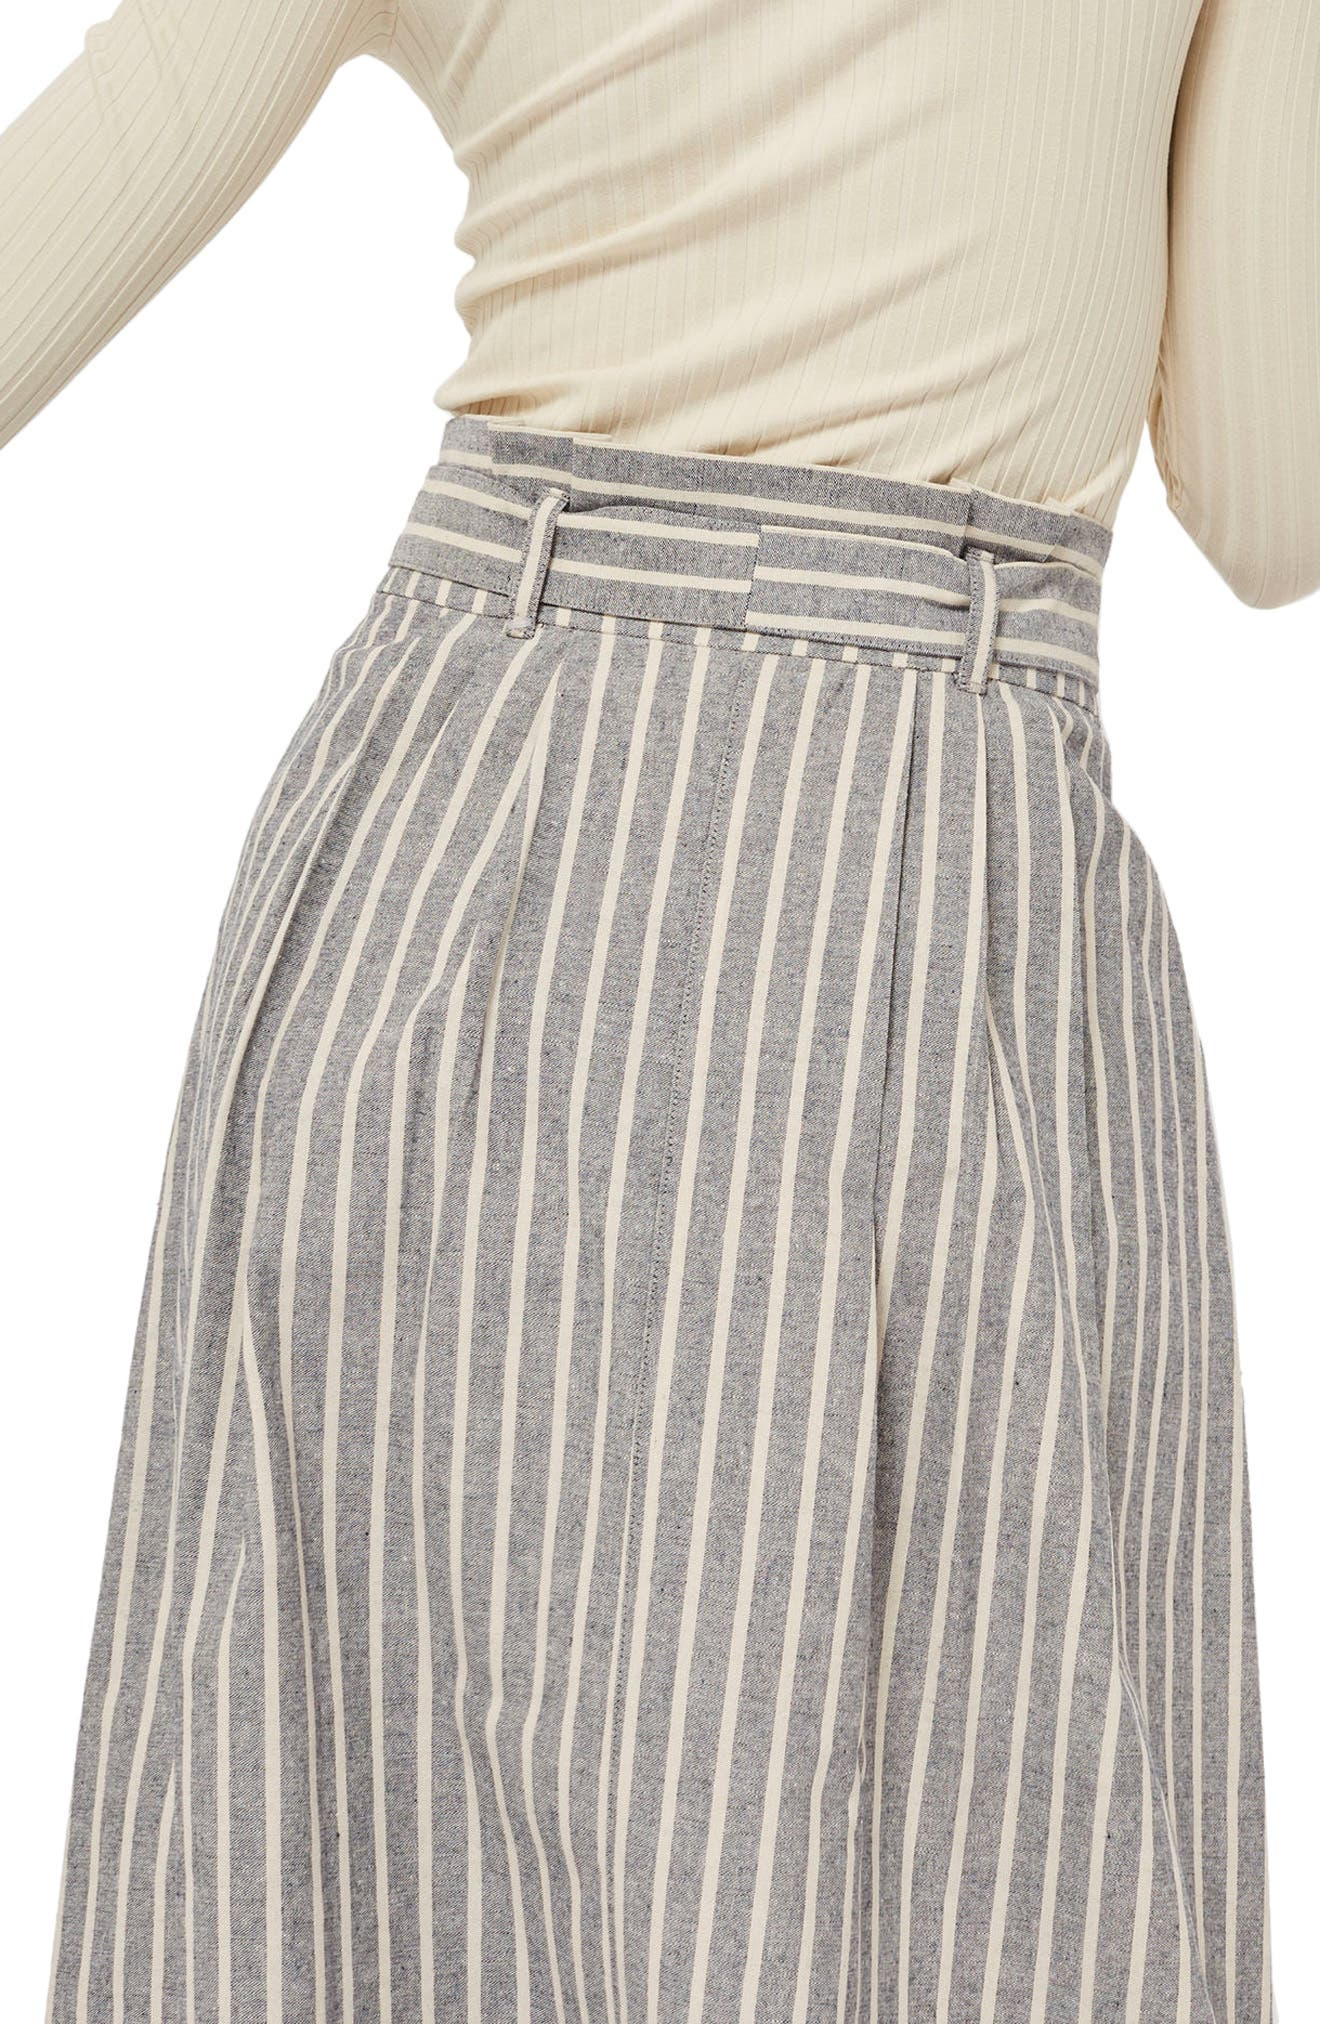 Stripe Tie Waist Midi Skirt,                             Alternate thumbnail 2, color,                             Grey Multi